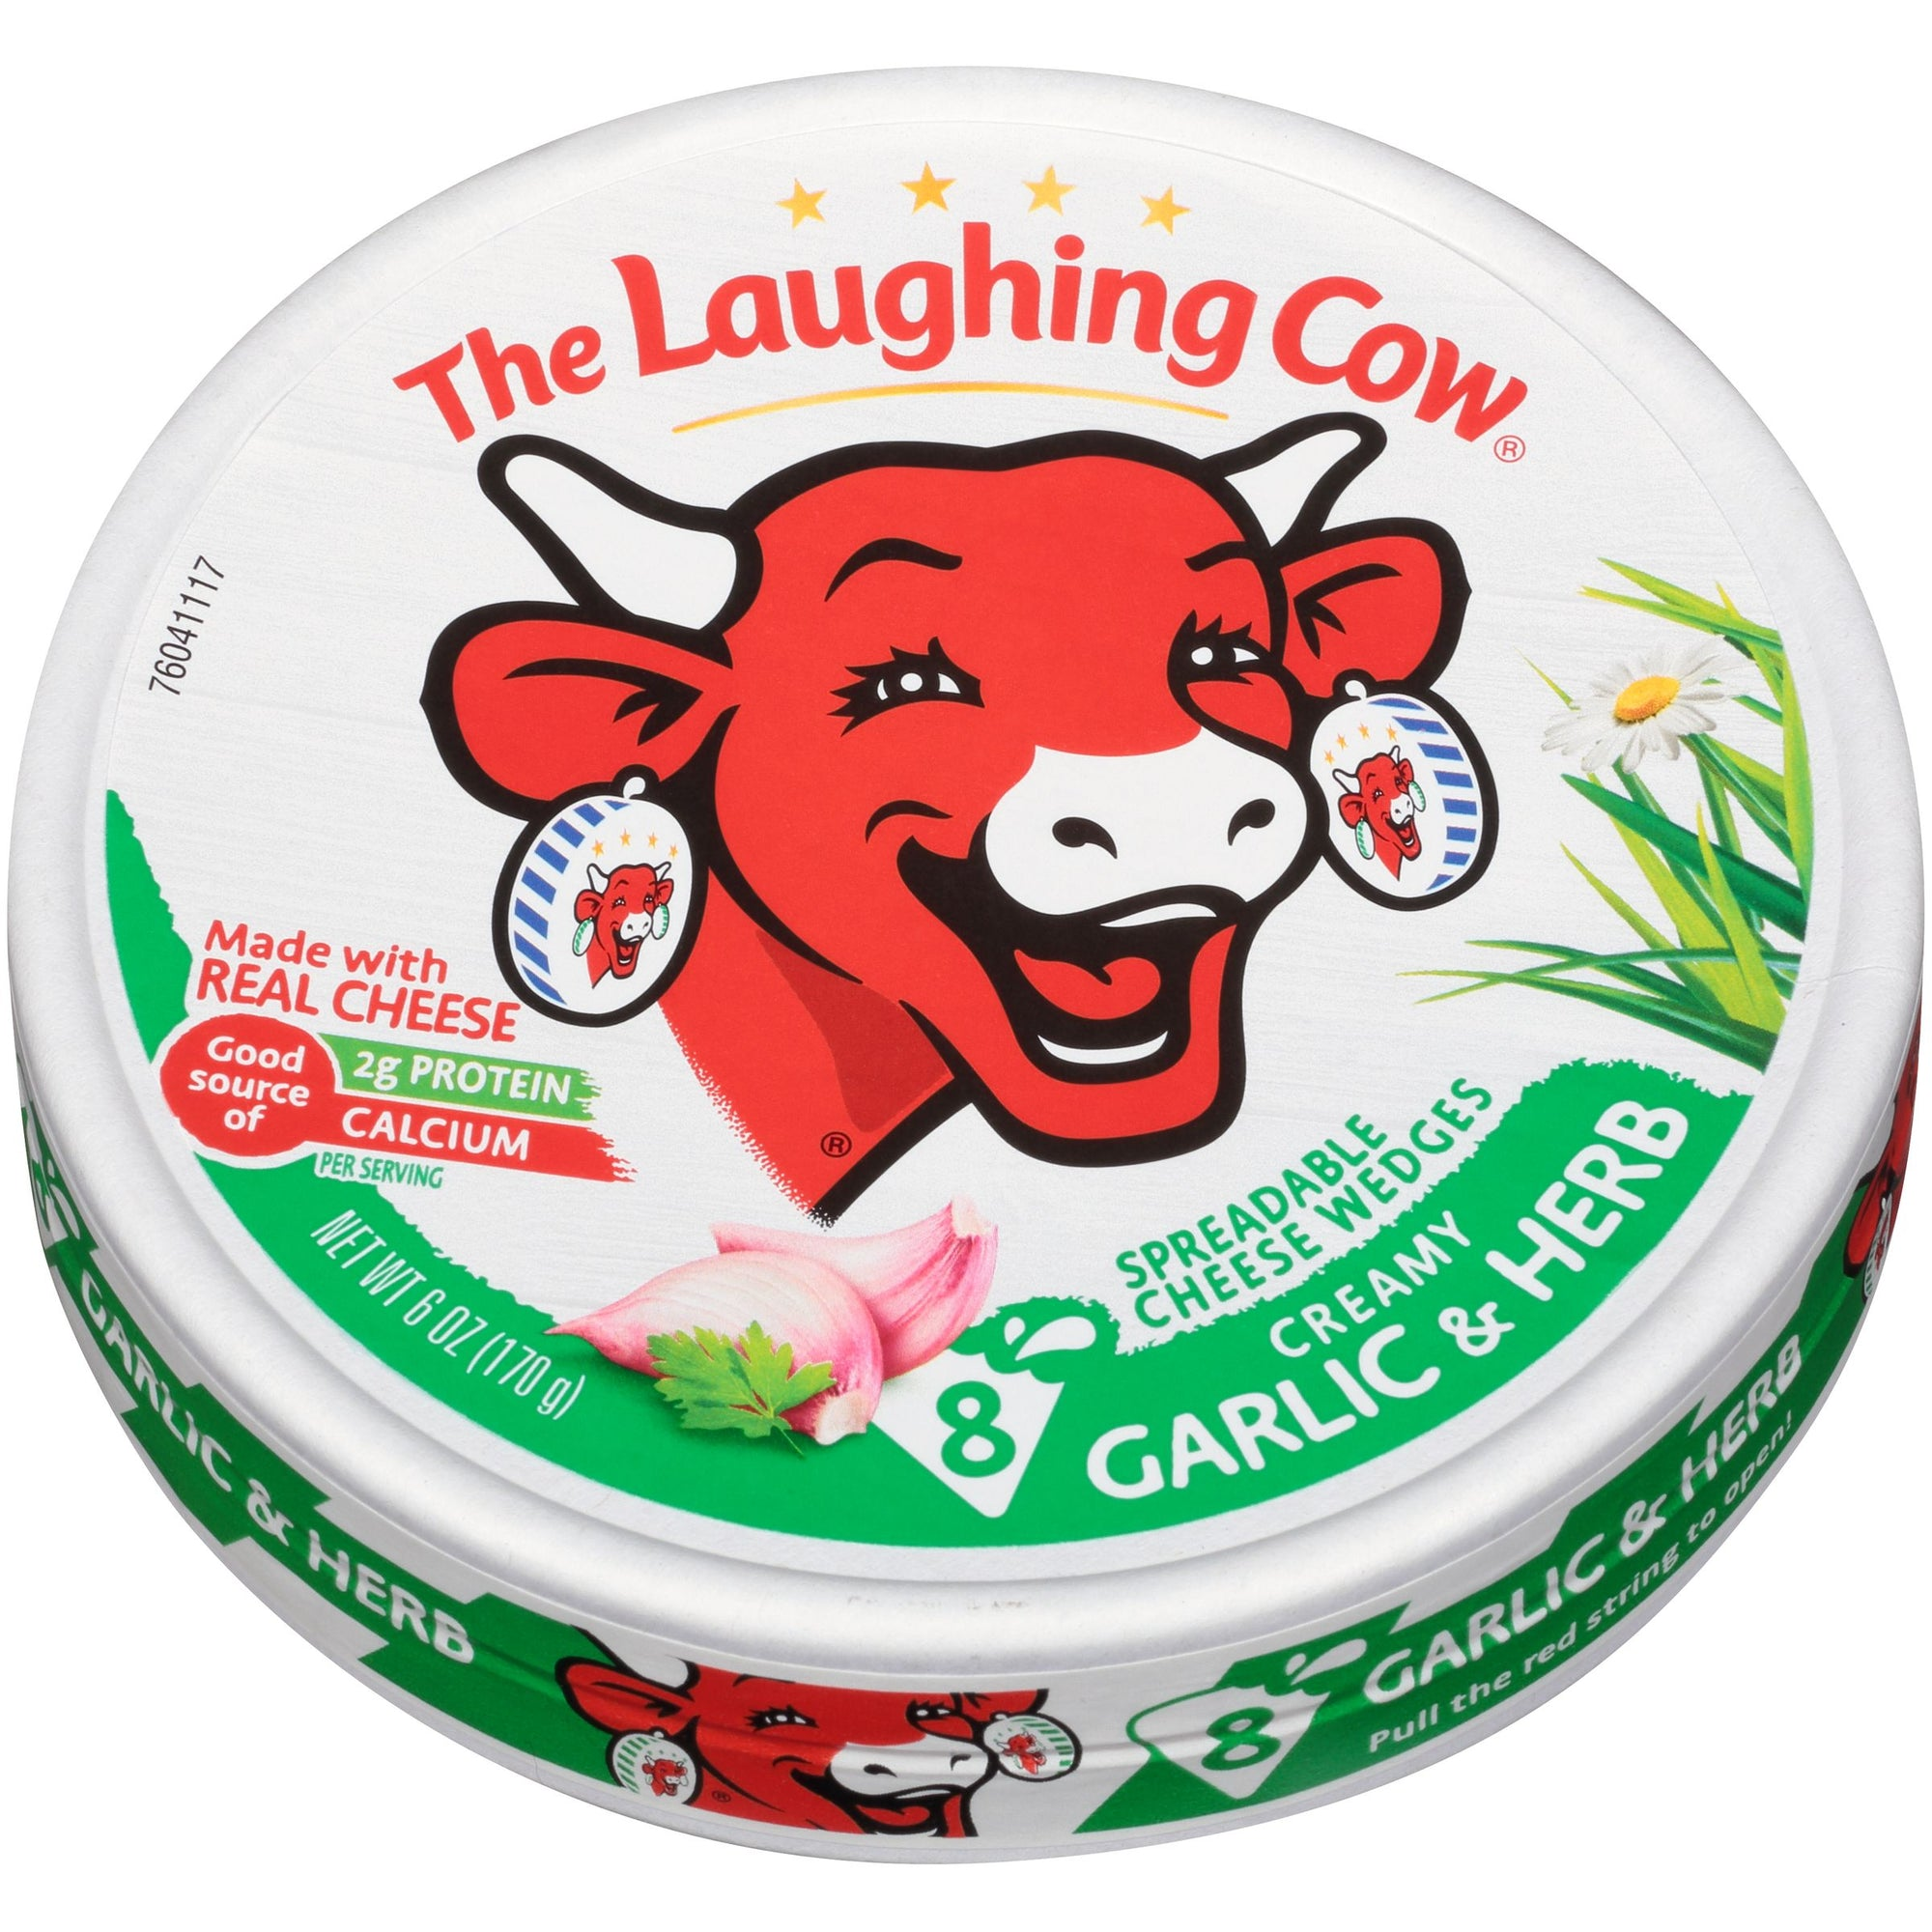 The Laughing Cow Creamy Garlic & Herb Swiss Cheese Spread - 6 Oz.